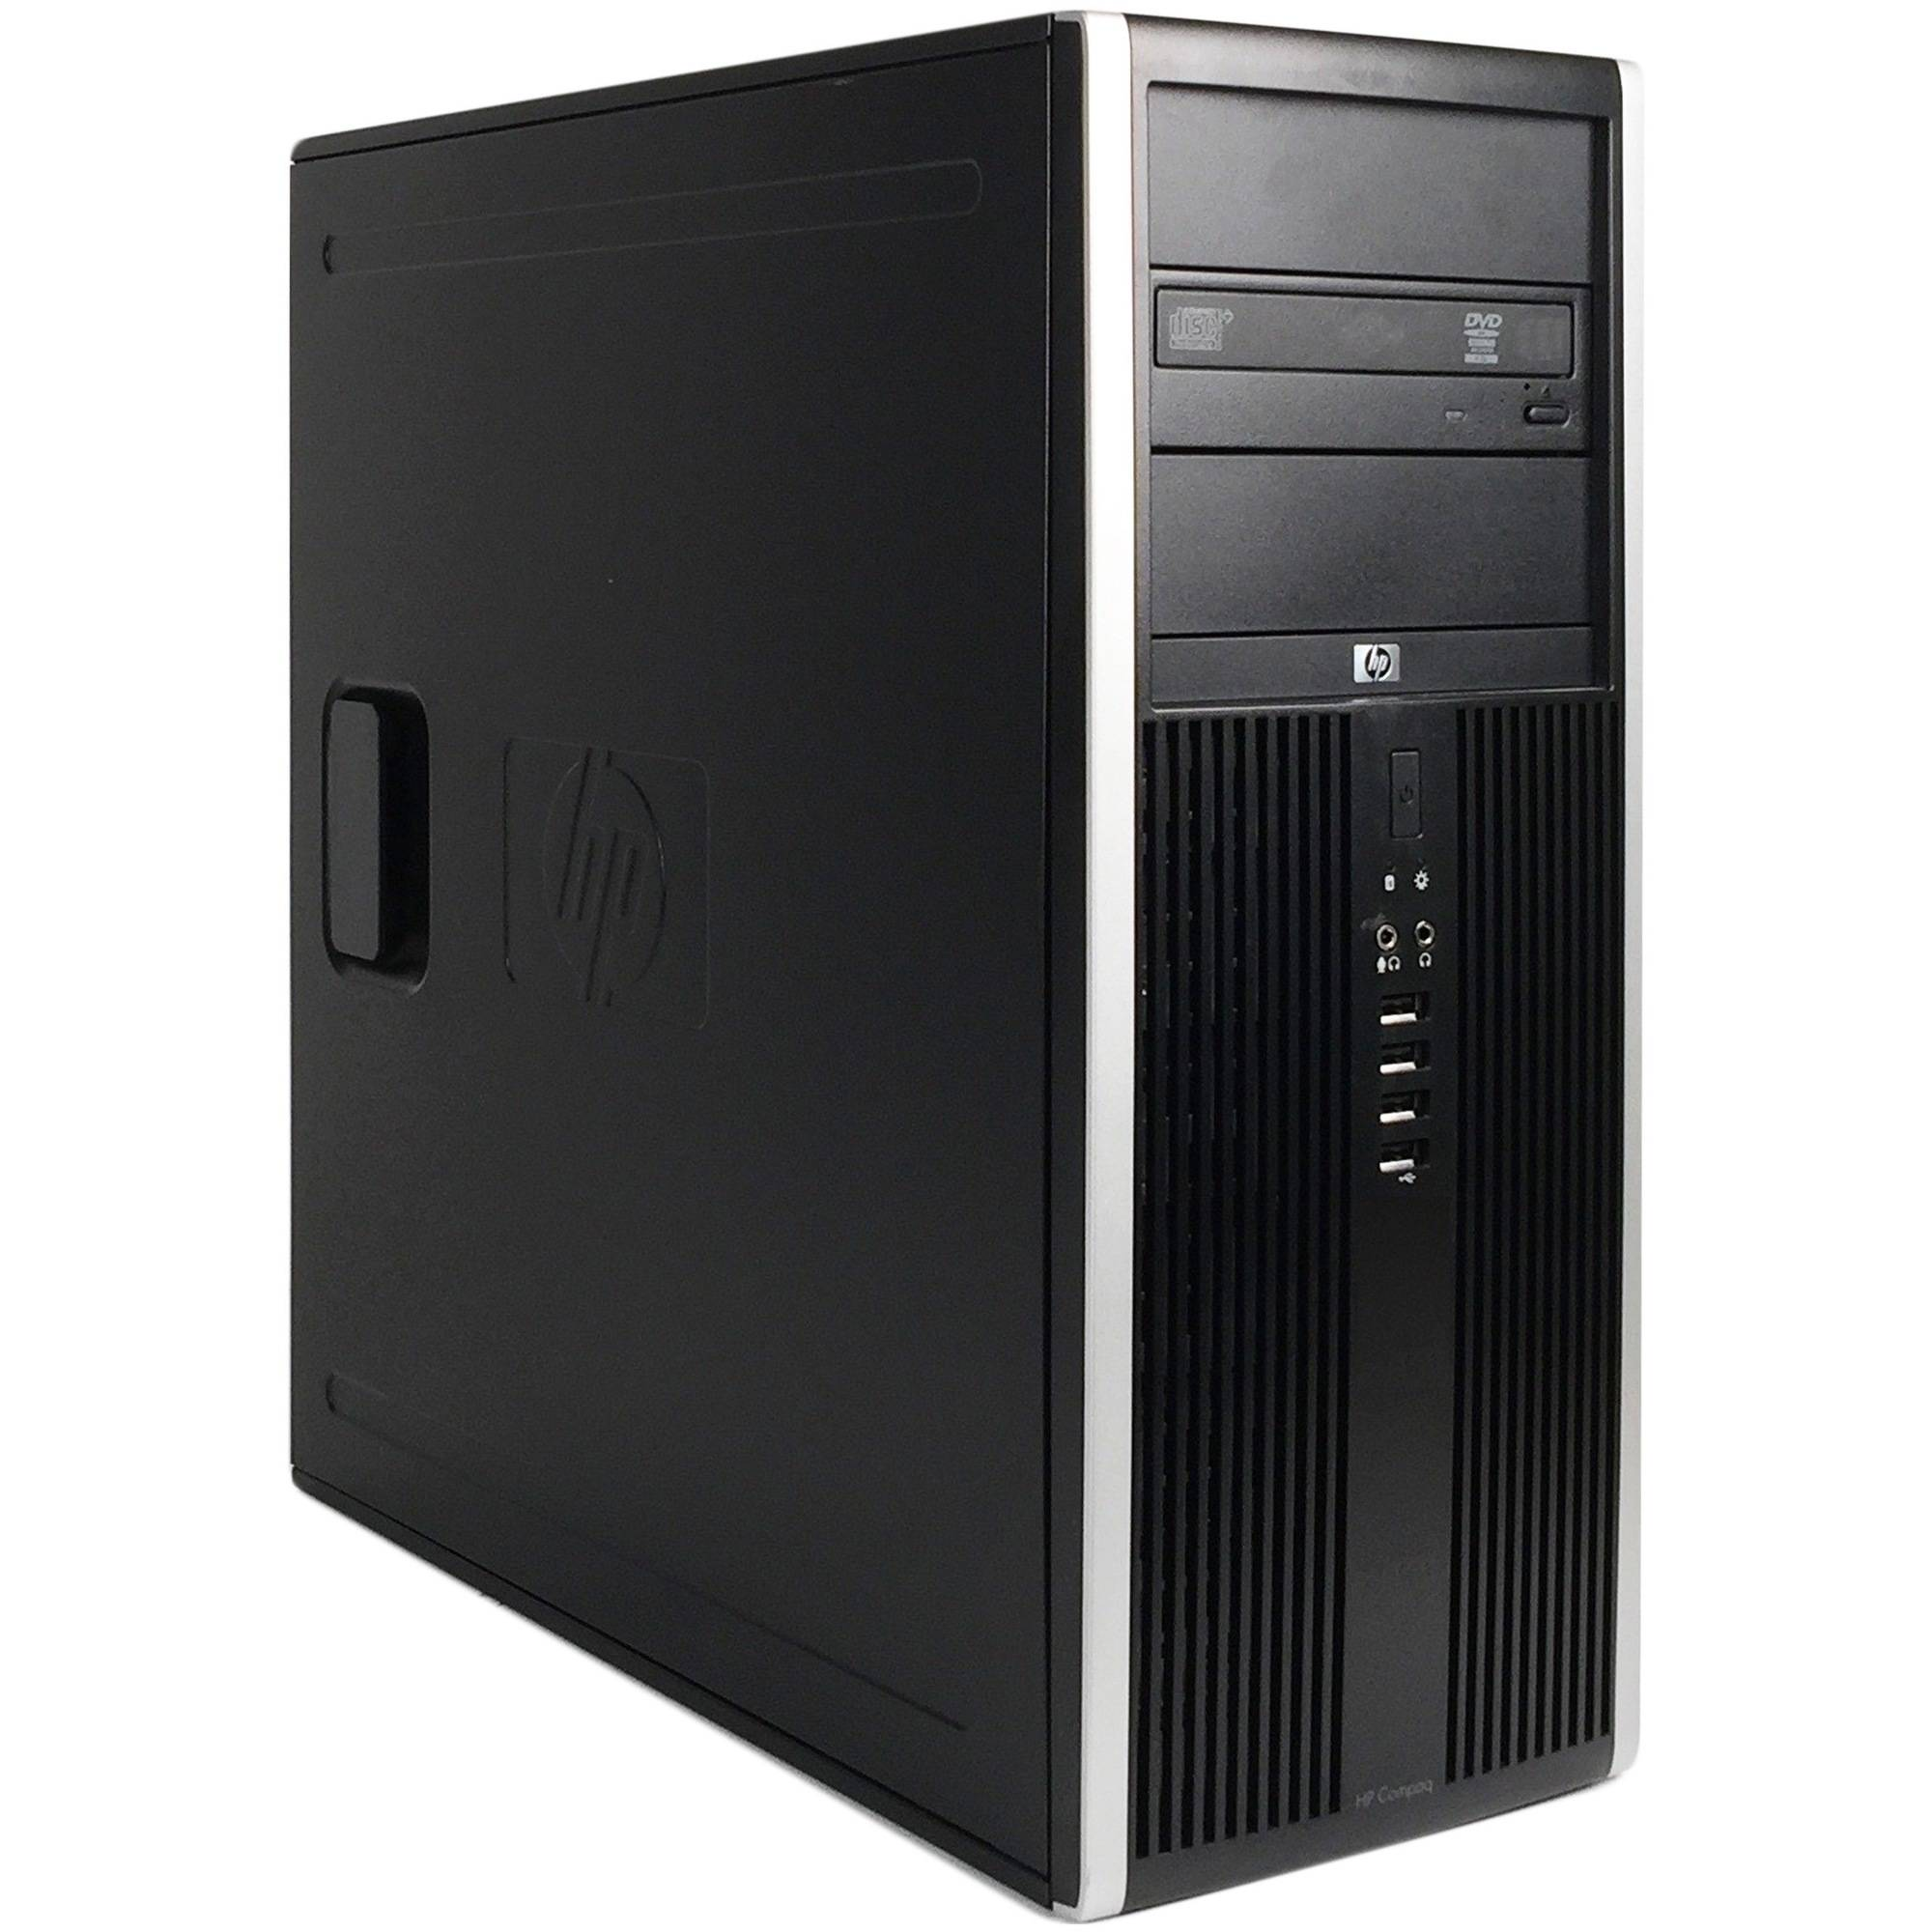 Refurbished HP 6200 Pro Tower Desktop PC with Intel Core i5-2400 Processor, 16GB Memory, 2TB Hard Drive and Windows 10 Professional (Monitor Not Included)